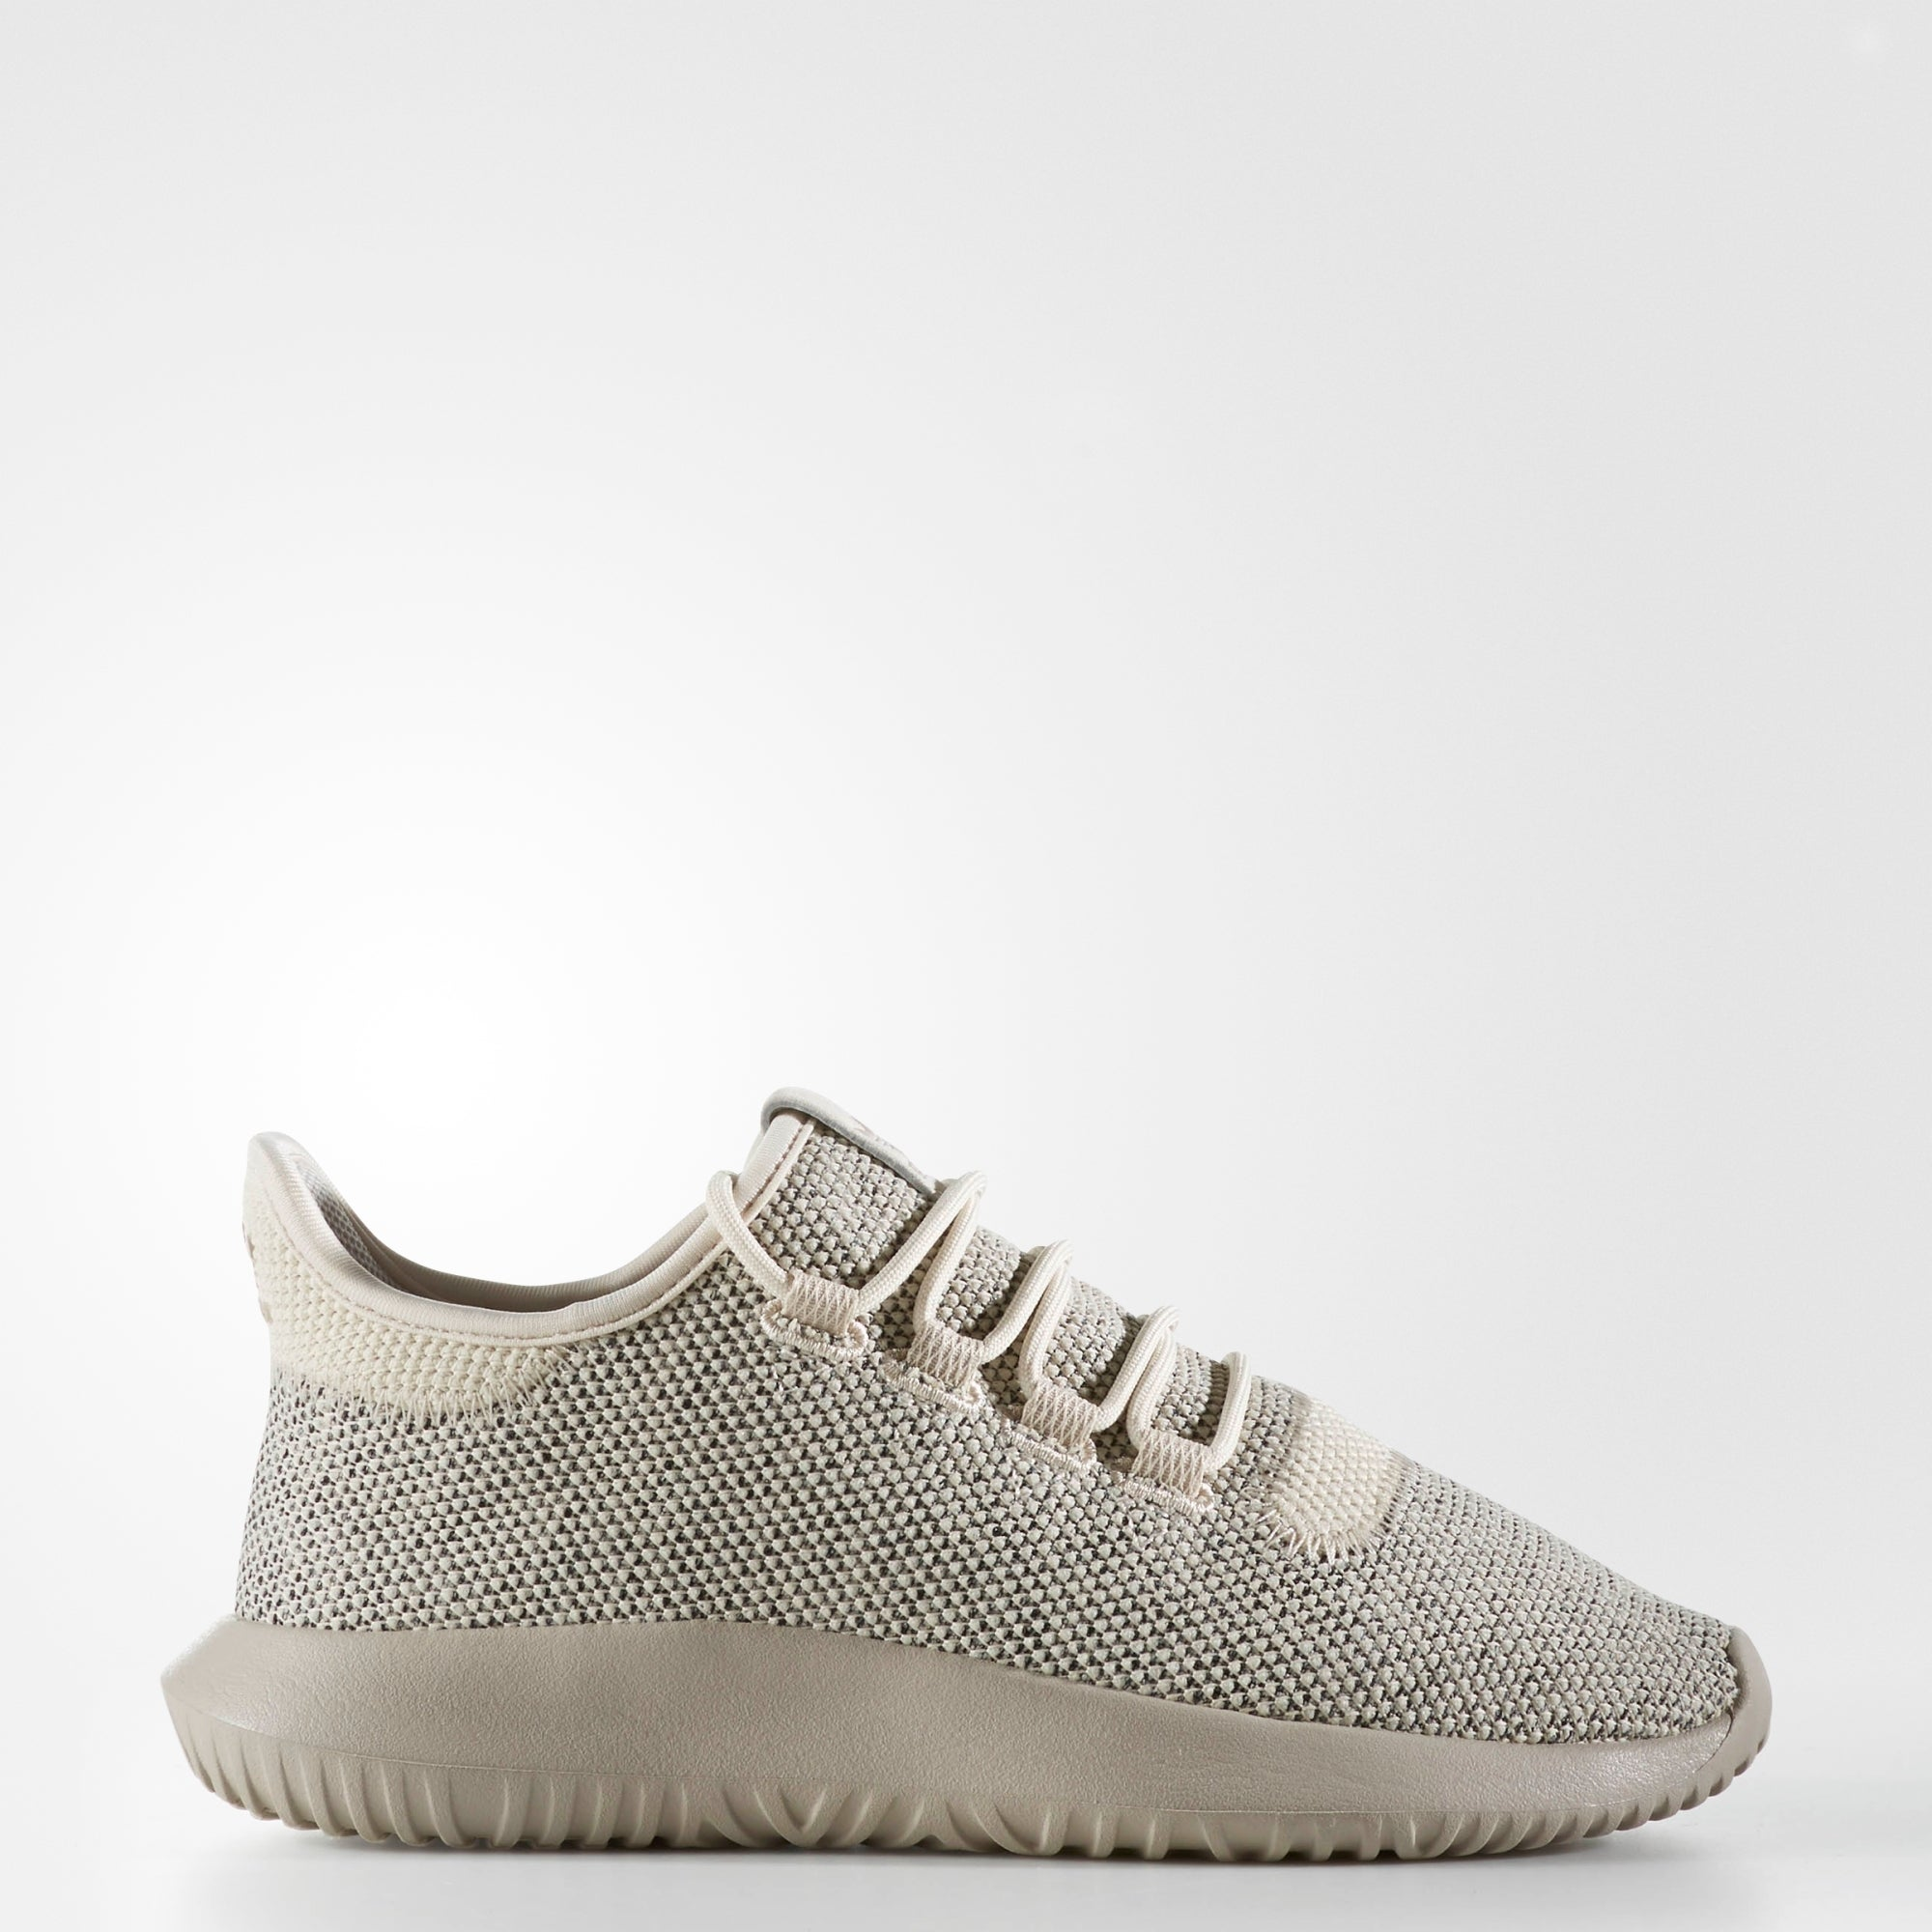 sports shoes 17355 a88a7 Kid's adidas Originals Tubular Shadow Shoes Clear Brown ...